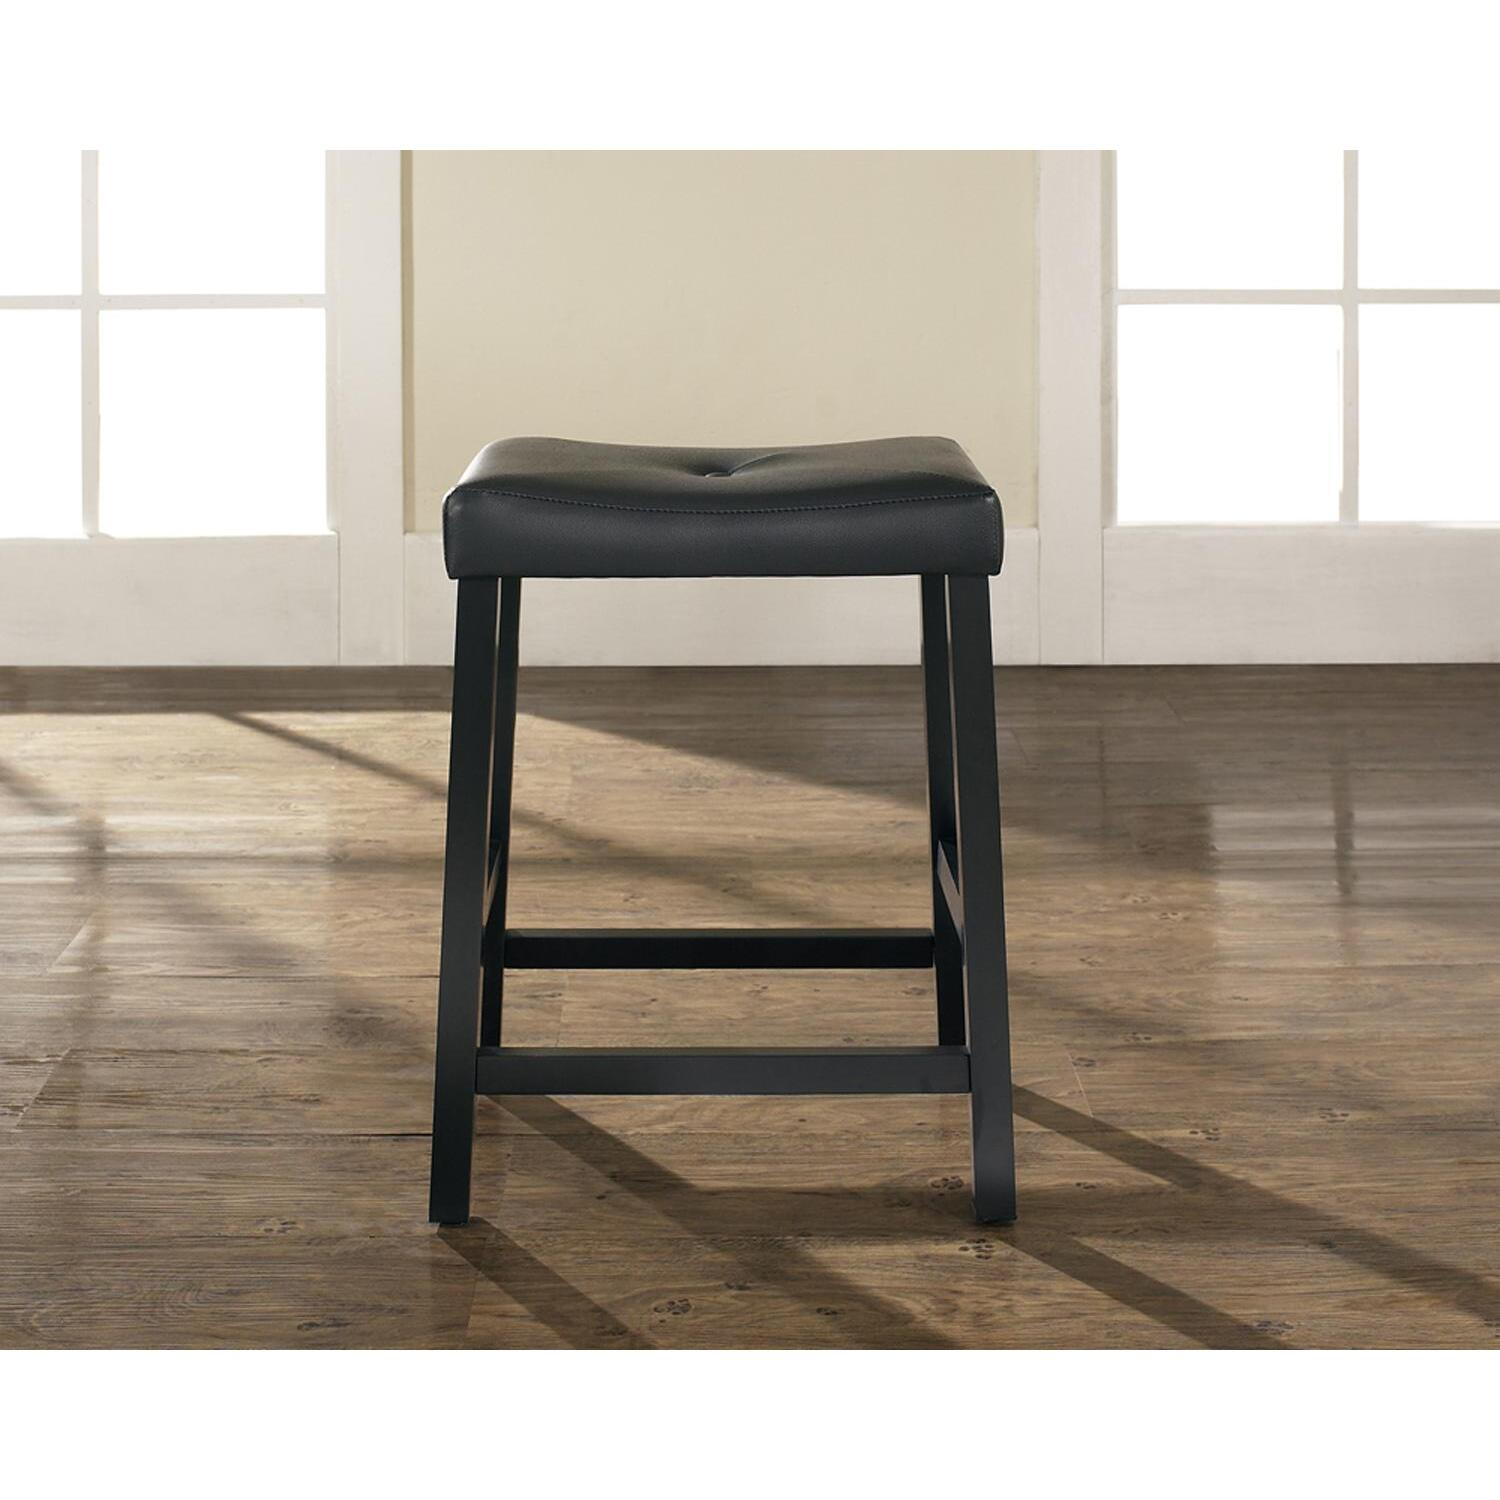 Upholstered Saddle Seat Bar Stool From 80 61 To 87 32